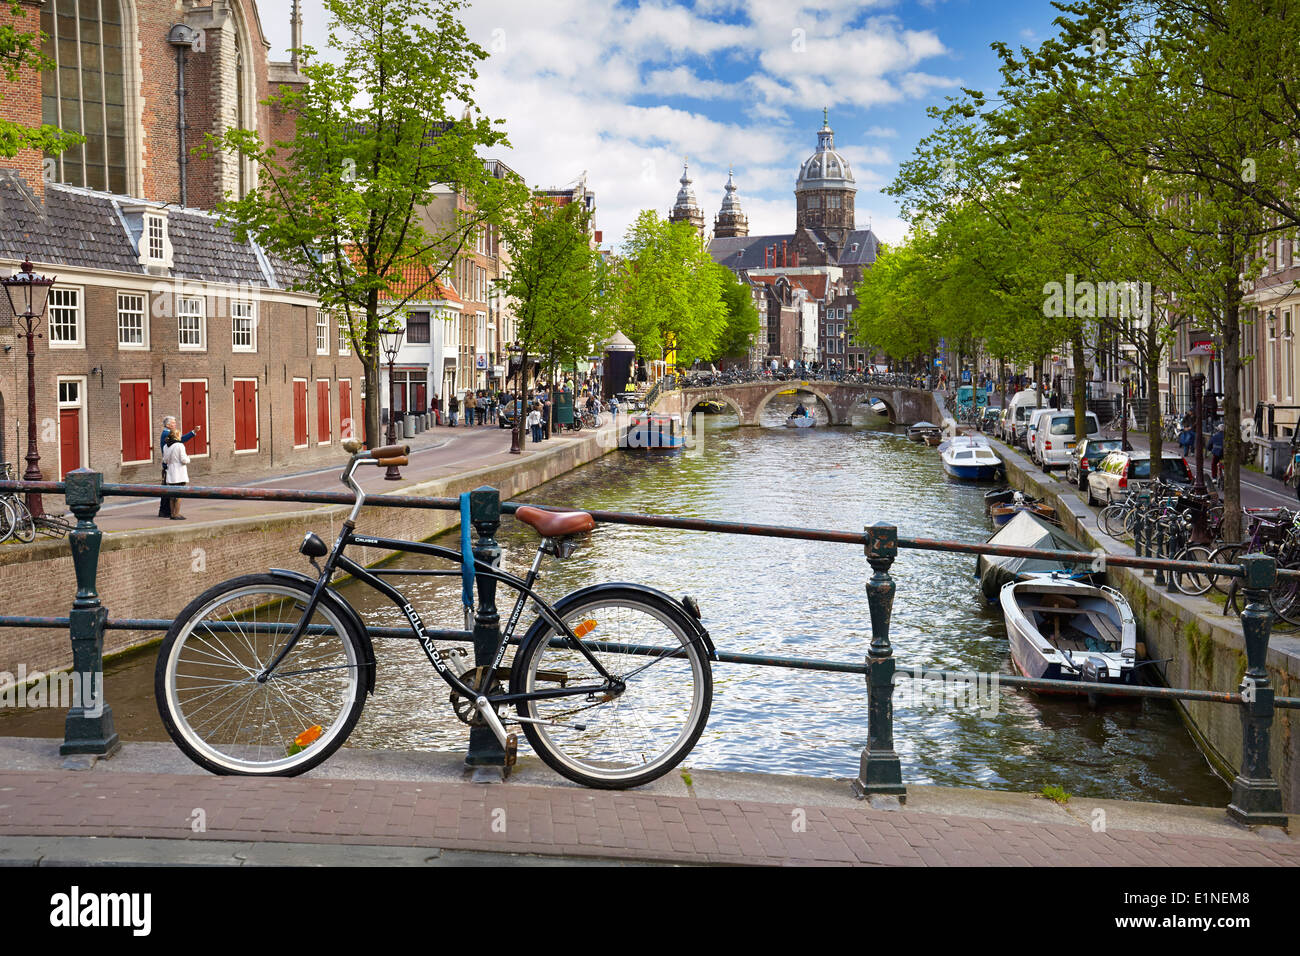 Location sur un canal à Amsterdam, Hollande, Pays-Bas Photo Stock